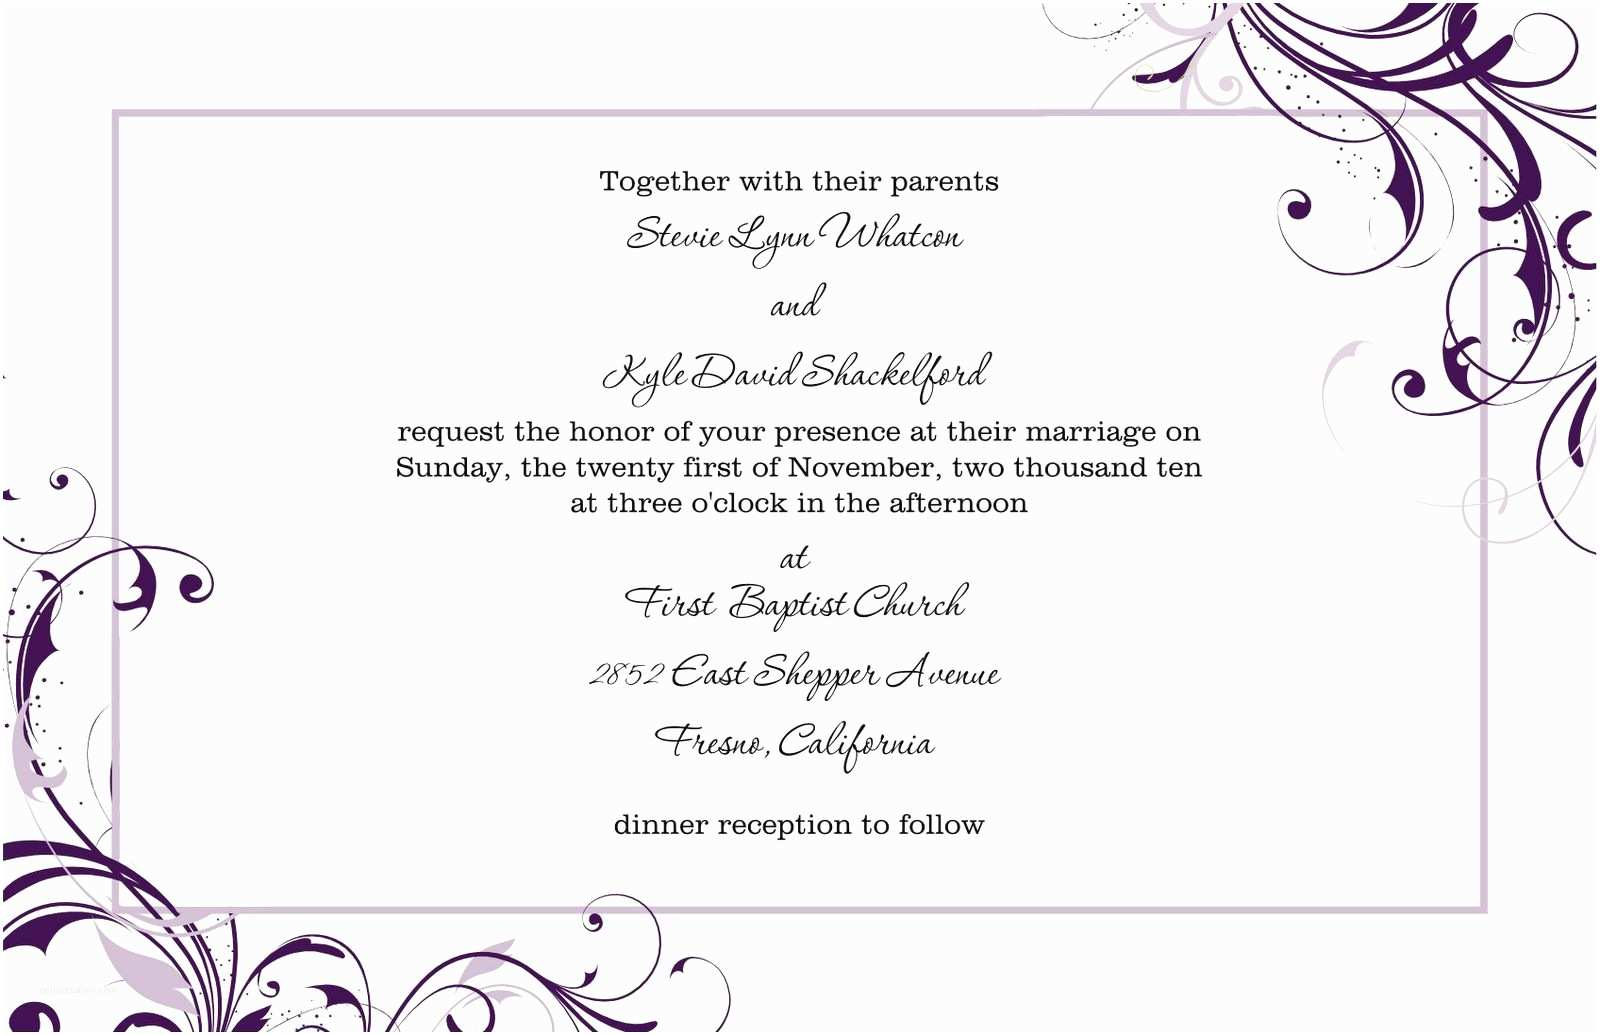 Free Email Wedding Invitation Templates Free Blank Wedding Invitation Templates for Microsoft Word